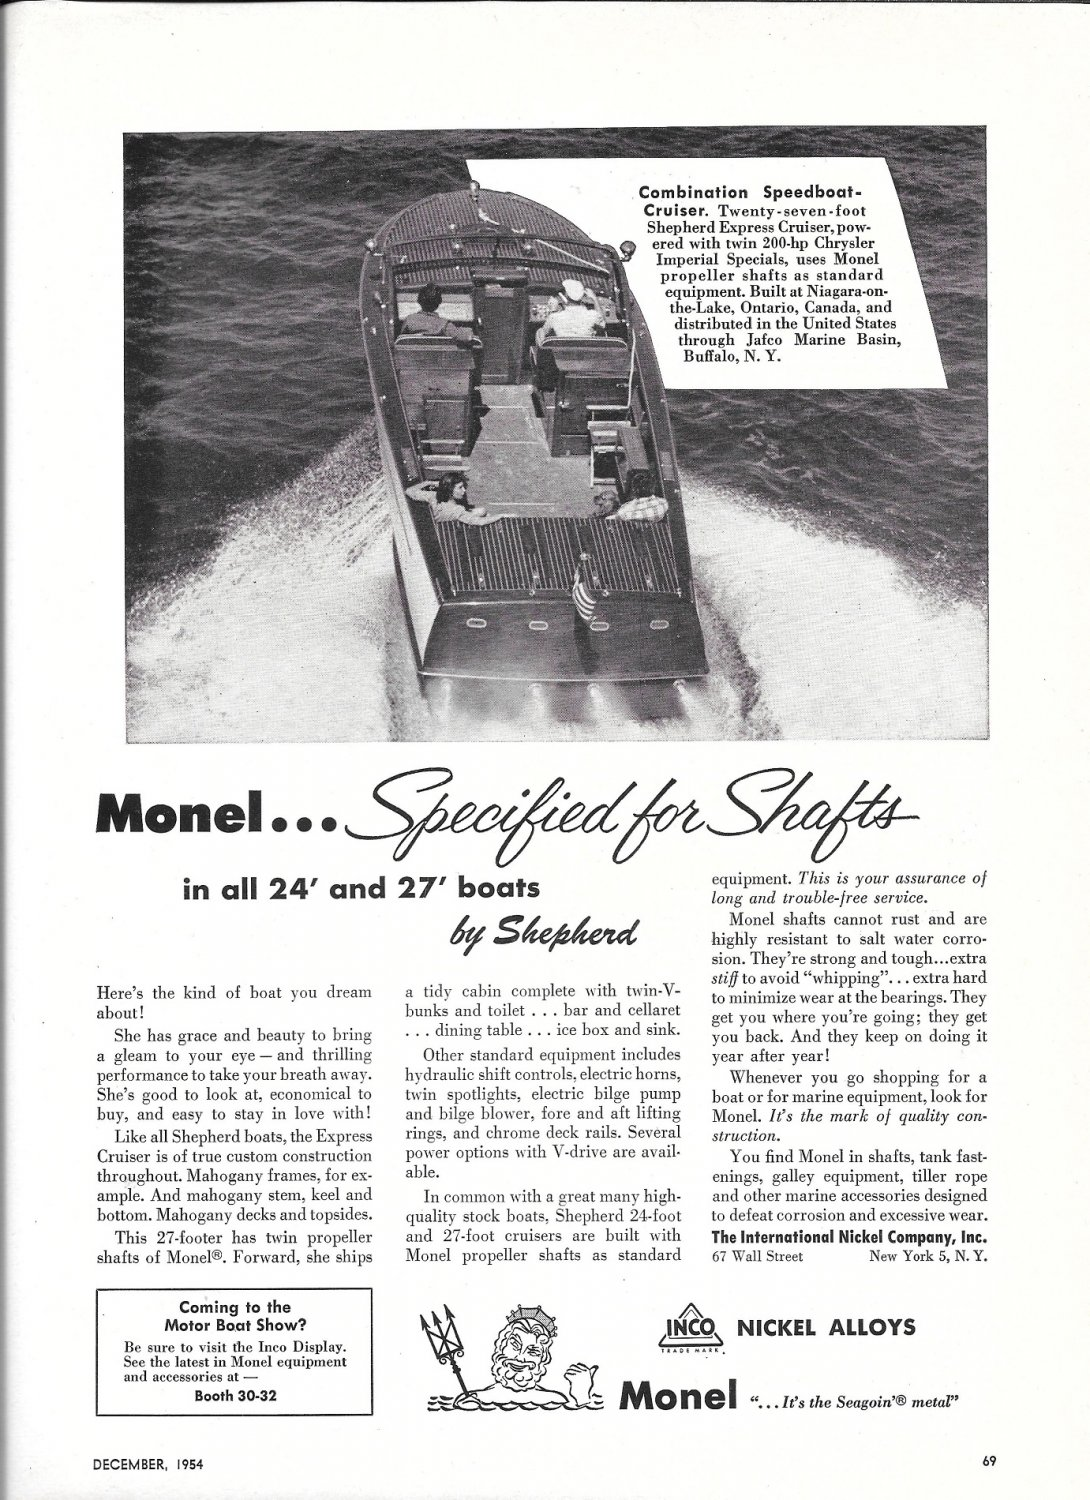 1954 Monel Metals Ad- Nice Photo of Shepherd 27' Speedboat Cruiser